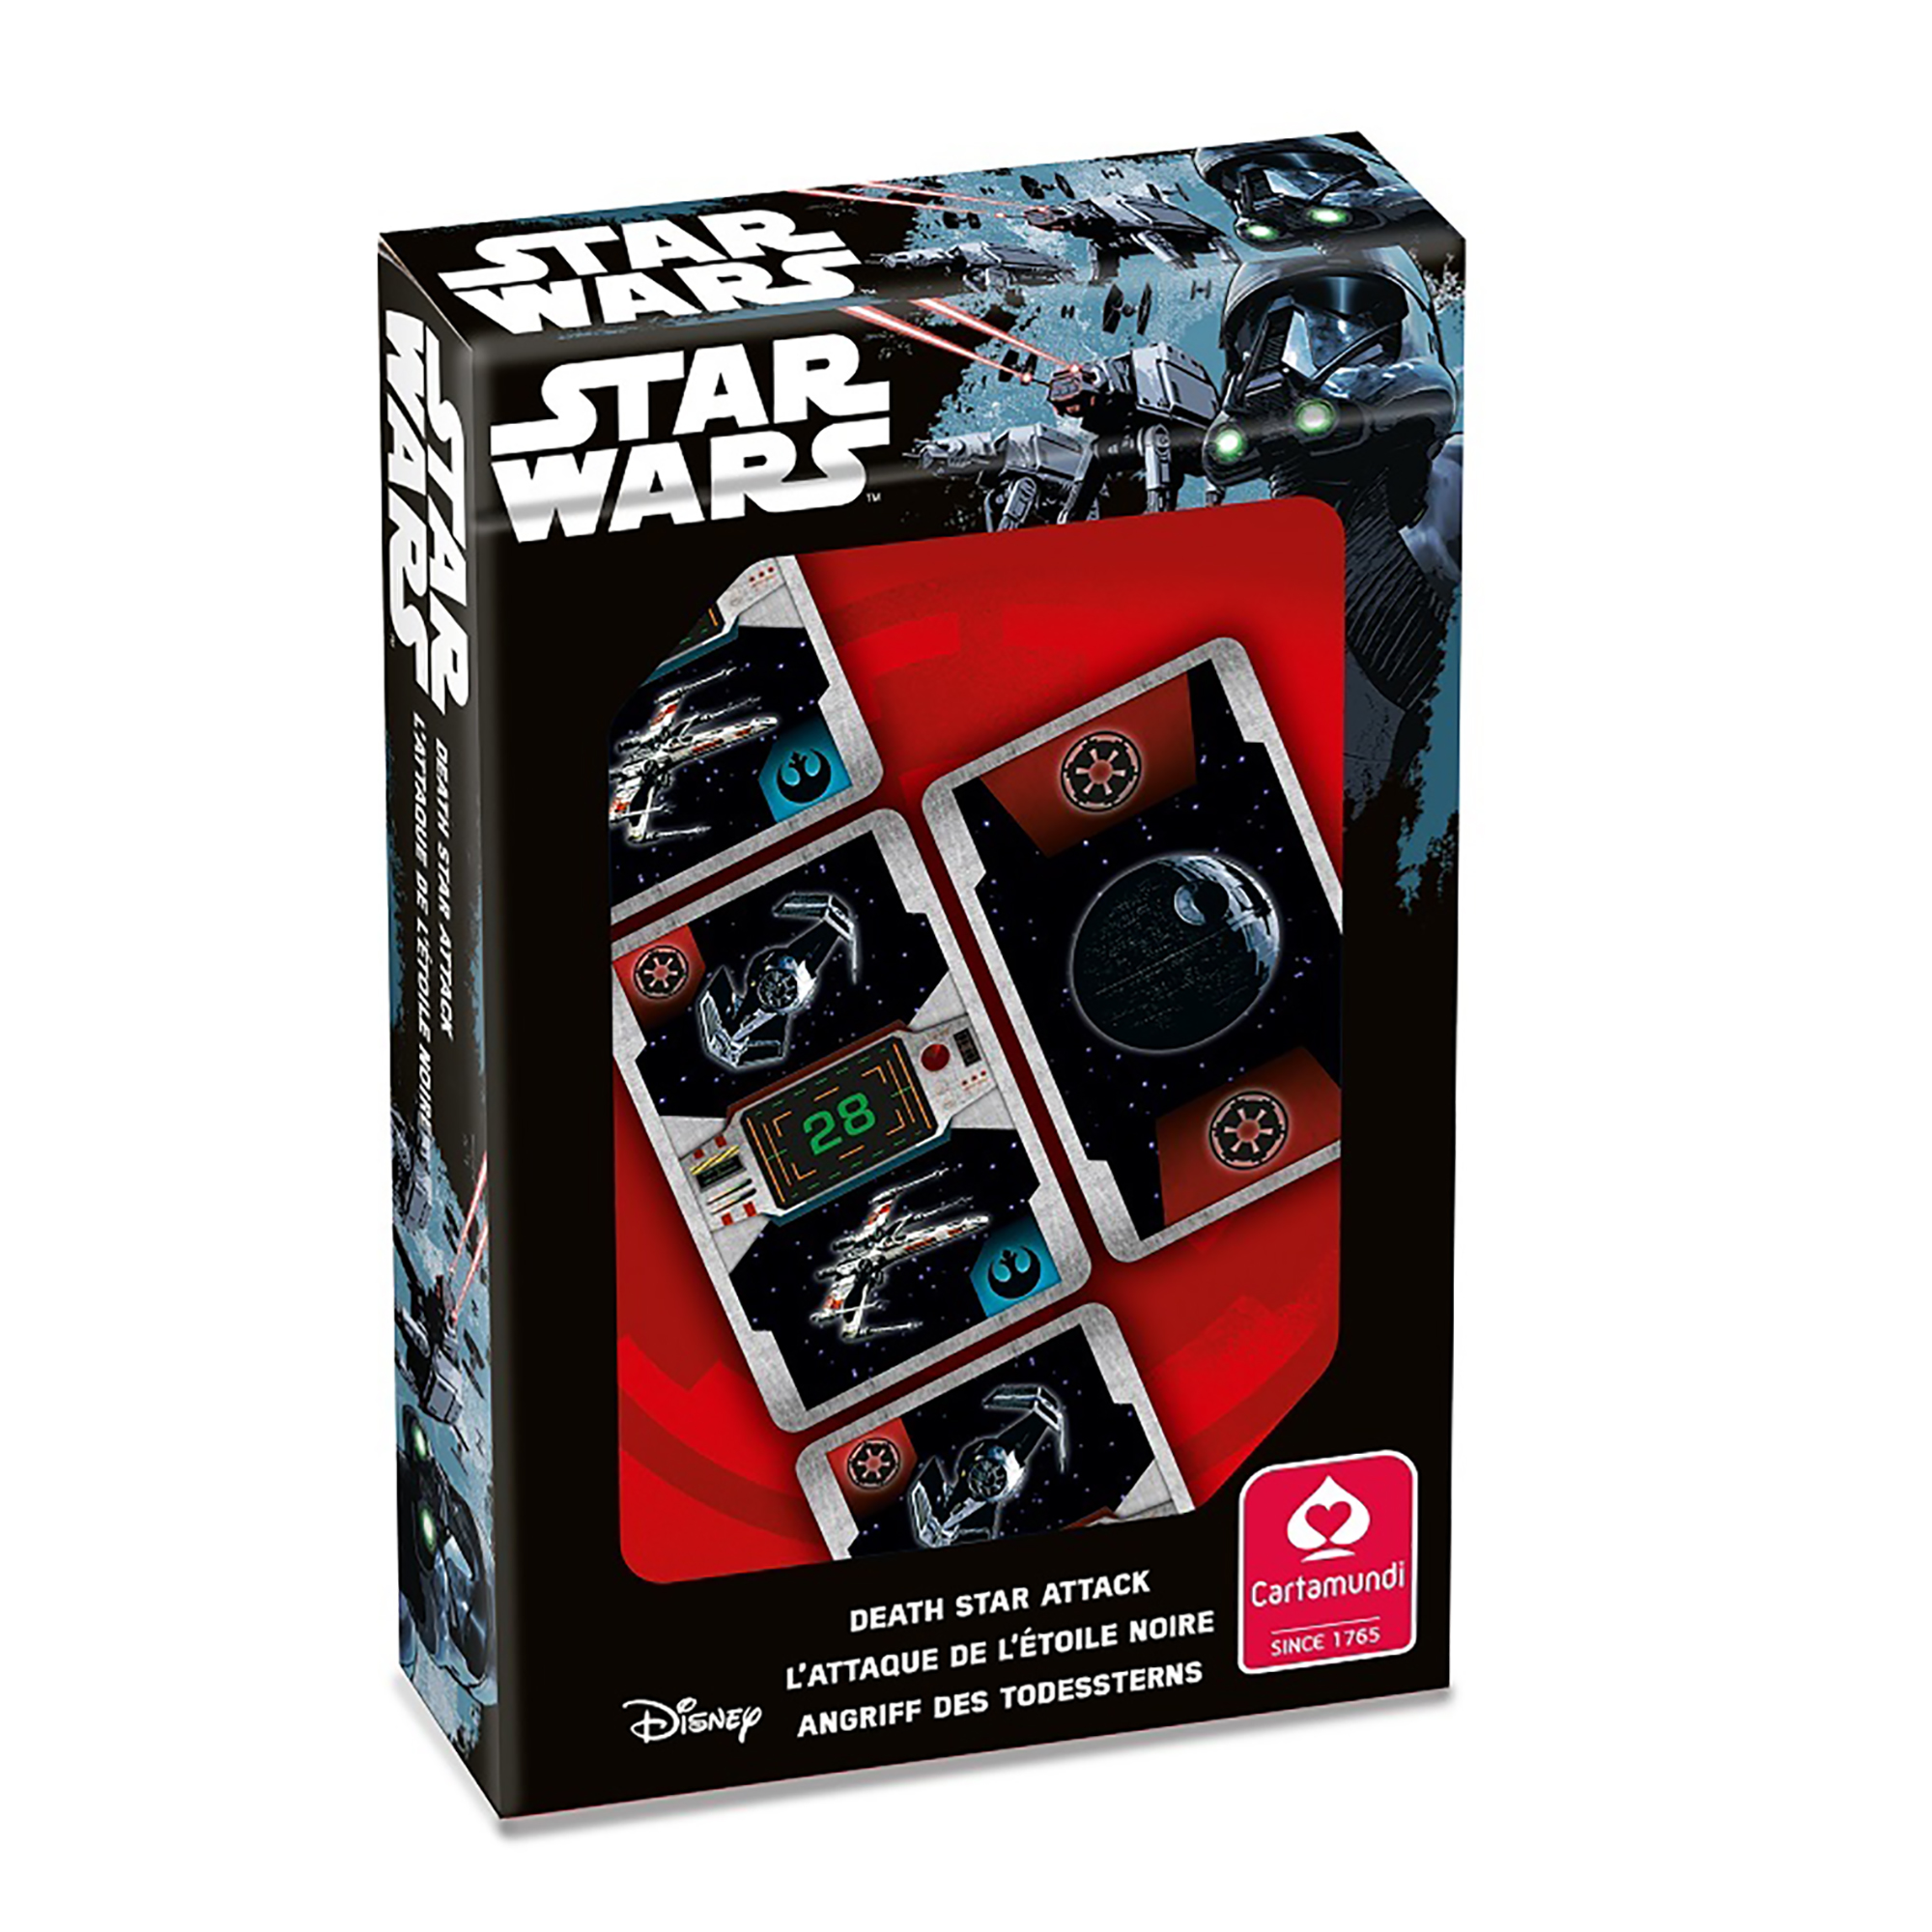 Star Wars Death Star Attack Game